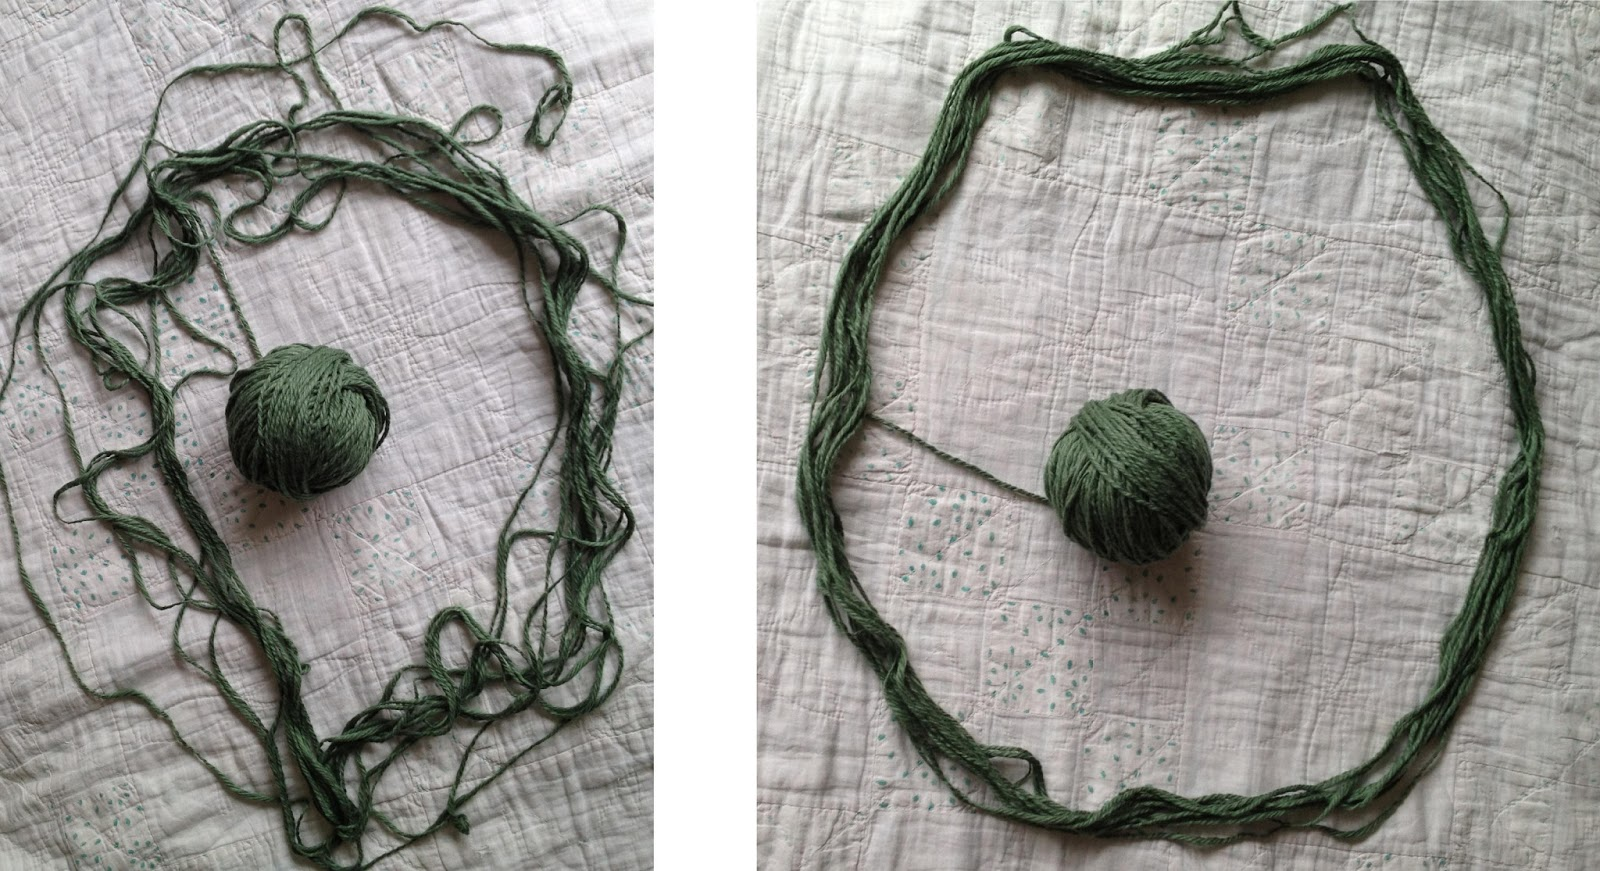 MAKING A BALL OF YARN FROM A HANK